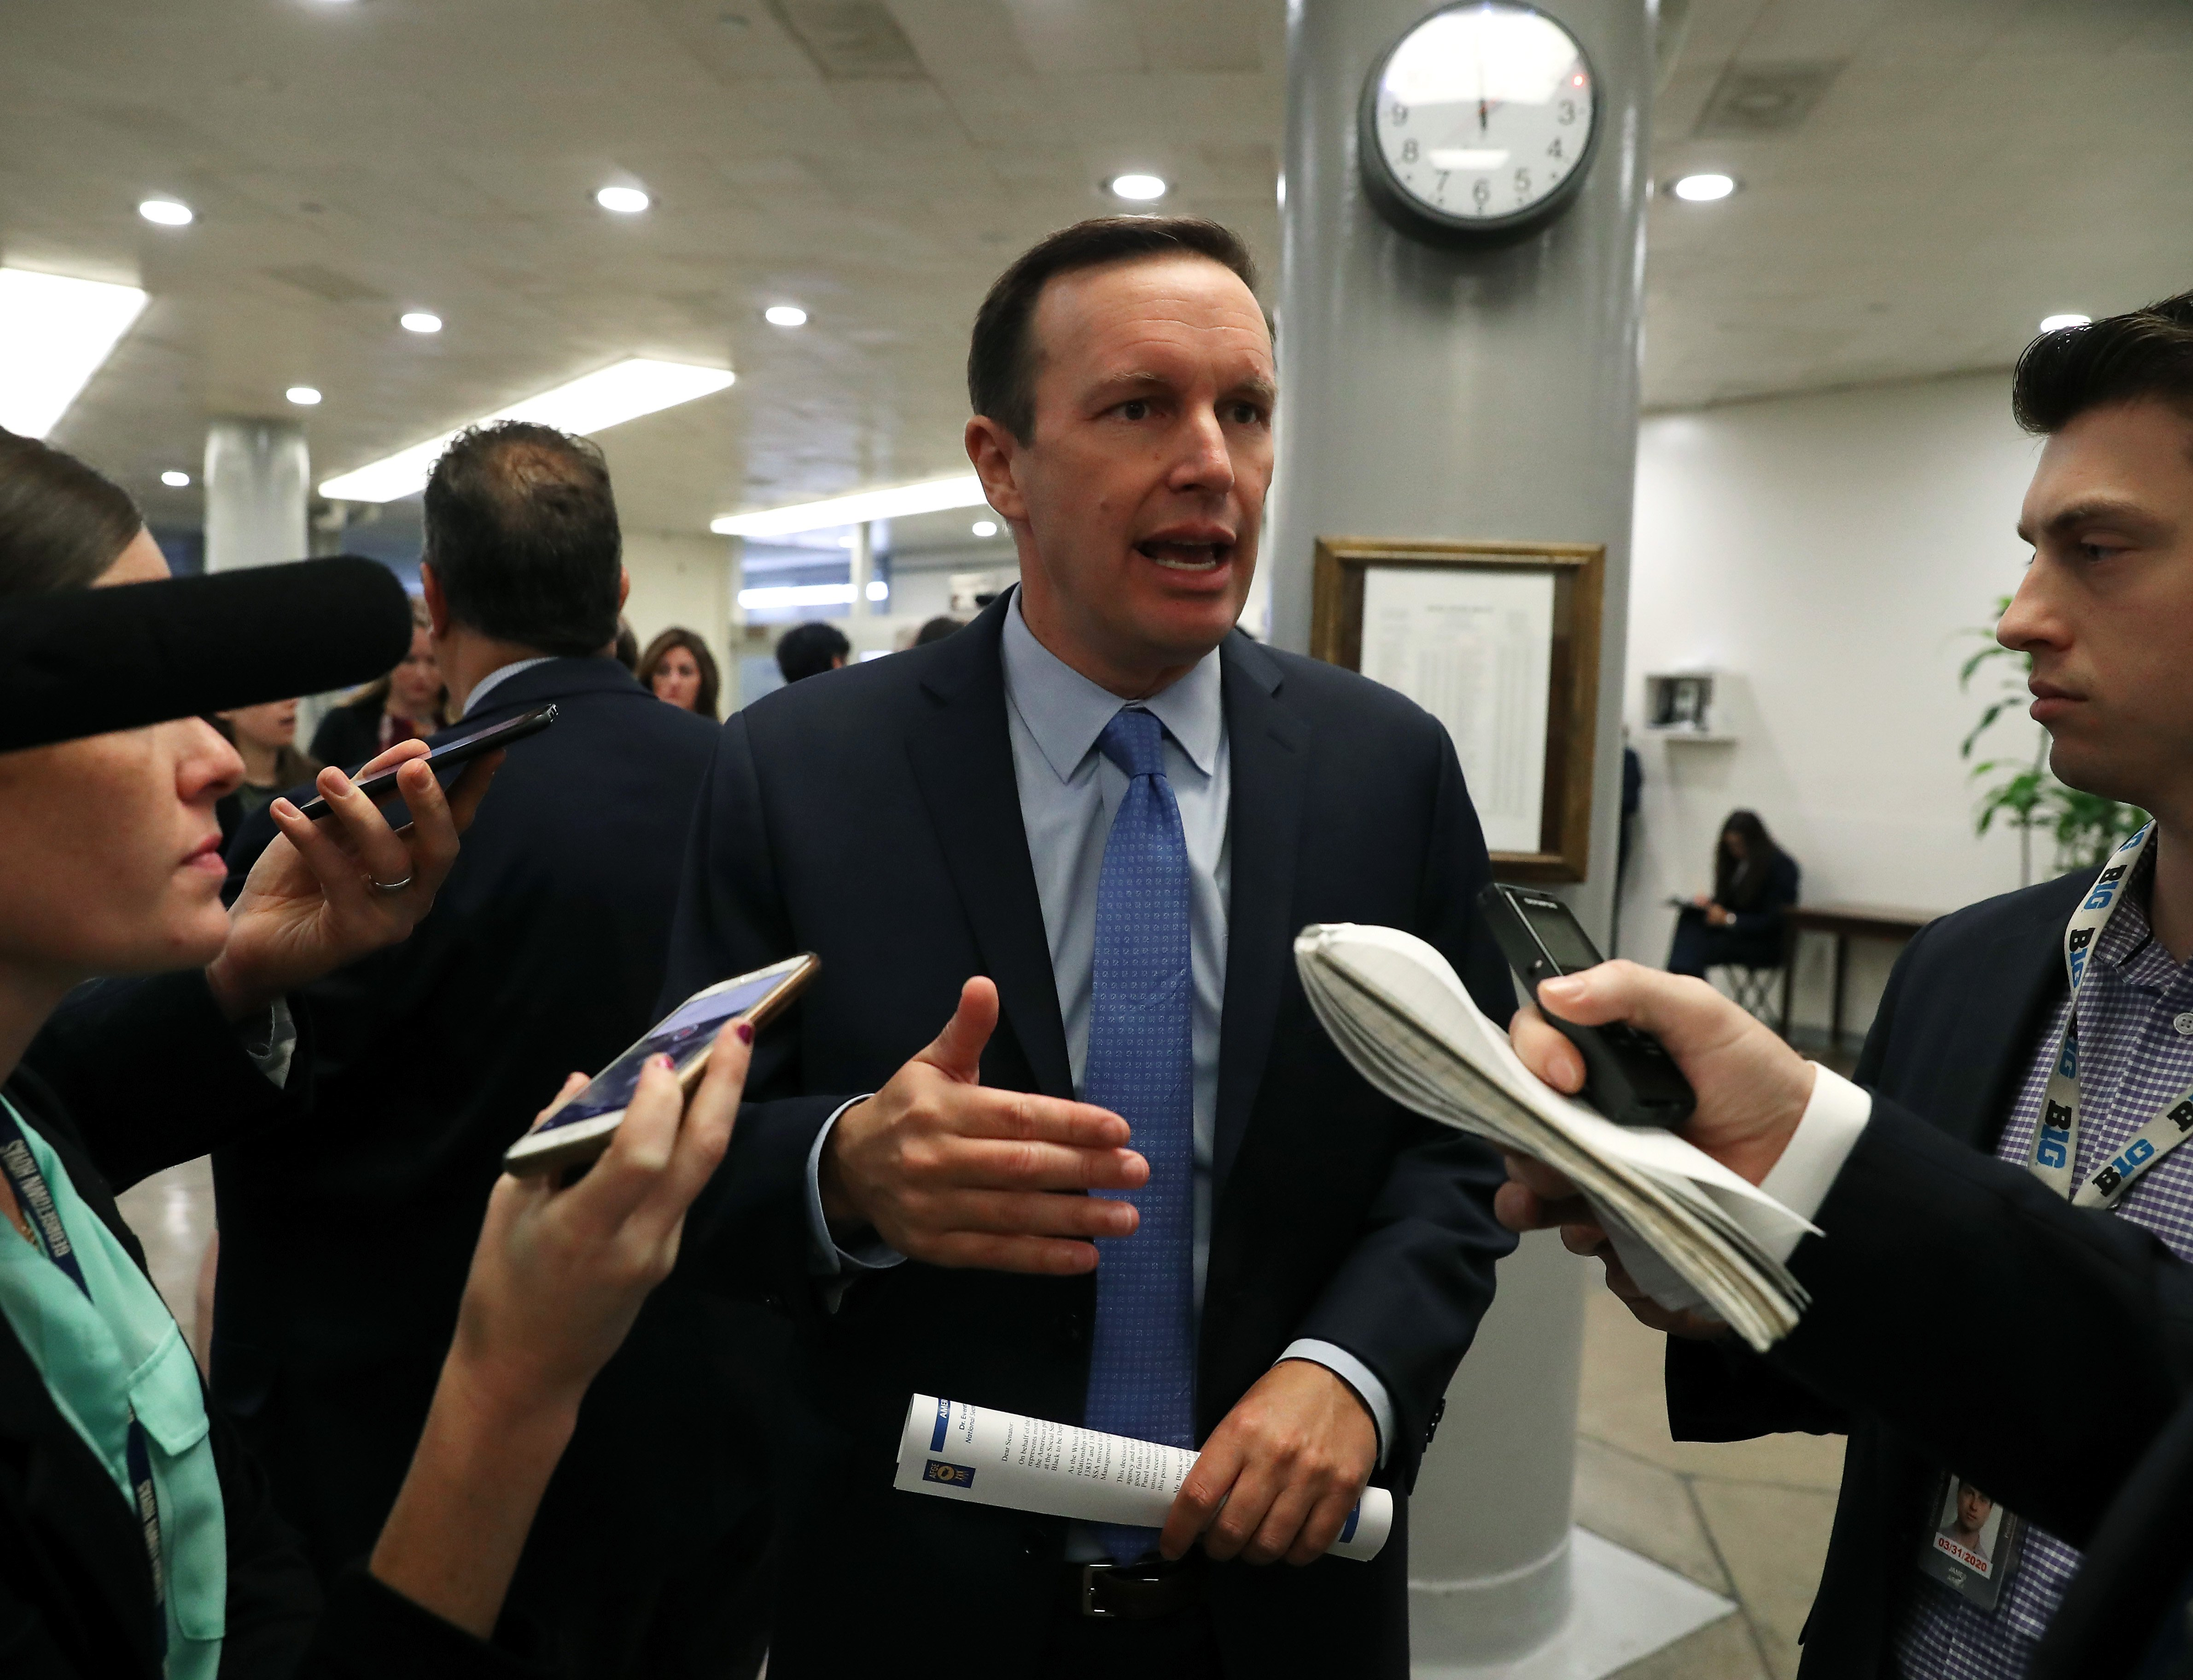 WASHINGTON, DC - SEPTEMBER 24: U.S. Sen. Chris Murphy (D-CT) talks to reporters ahead of a vote before attending the weekly Senate Democrat policy luncheon on Capitol Hill September 24, 2019 in Washington, DC. (Photo by Mark Wilson/Getty Images)